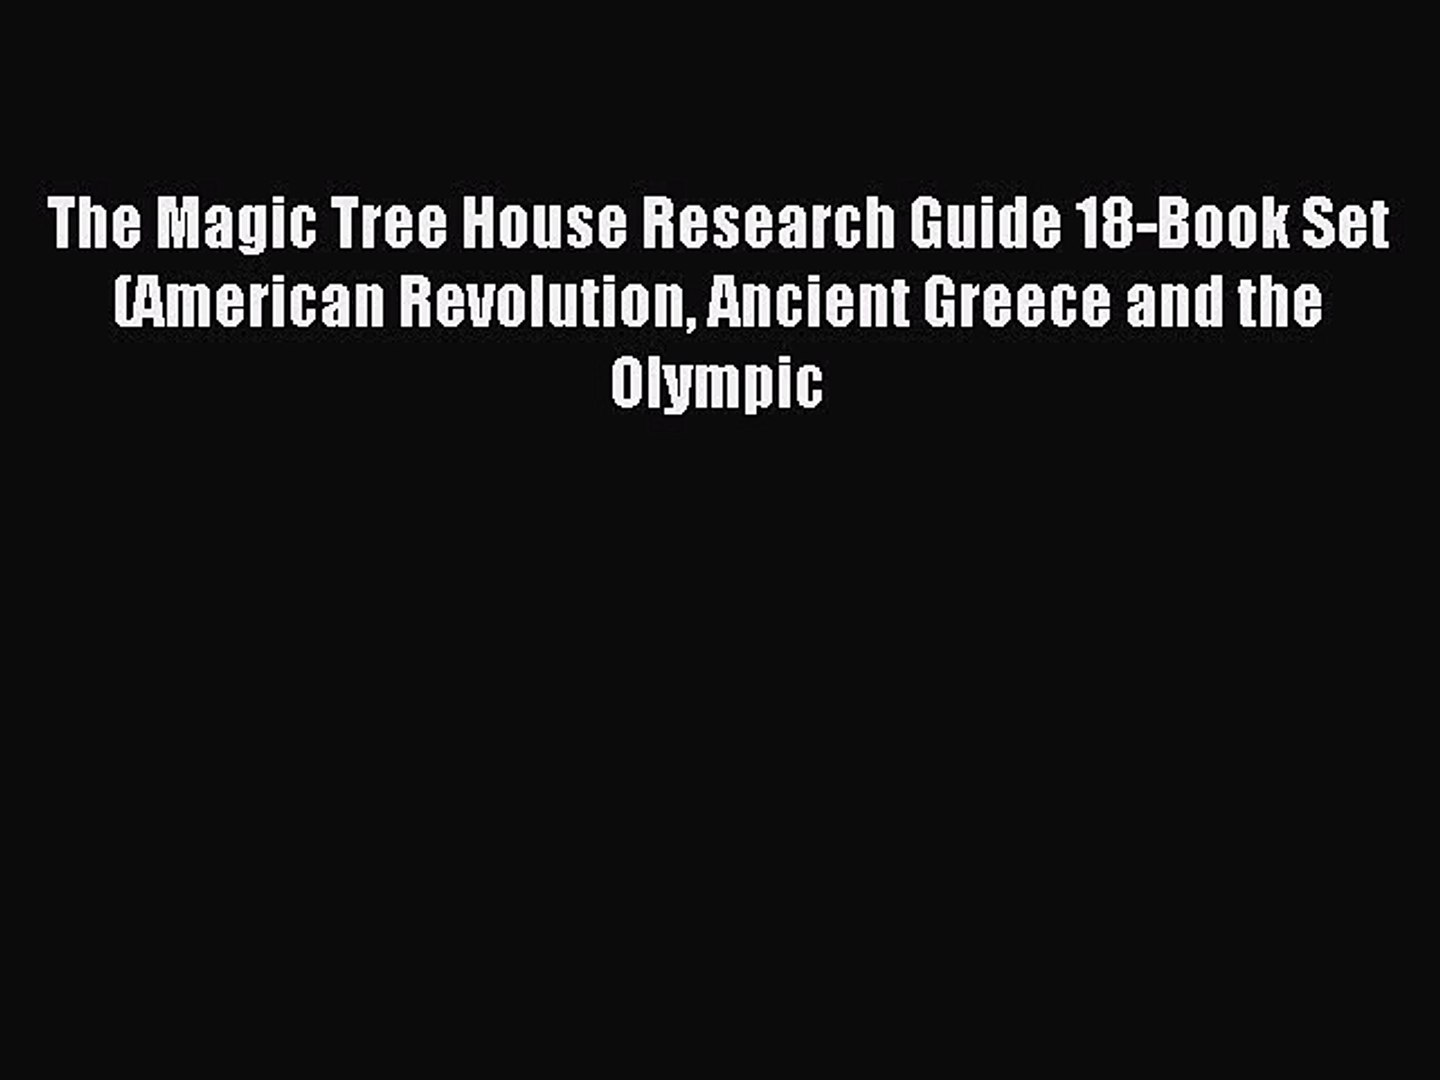 Download The Magic Tree House Research Guide 18-Book Set (American Revolution Ancient Greece